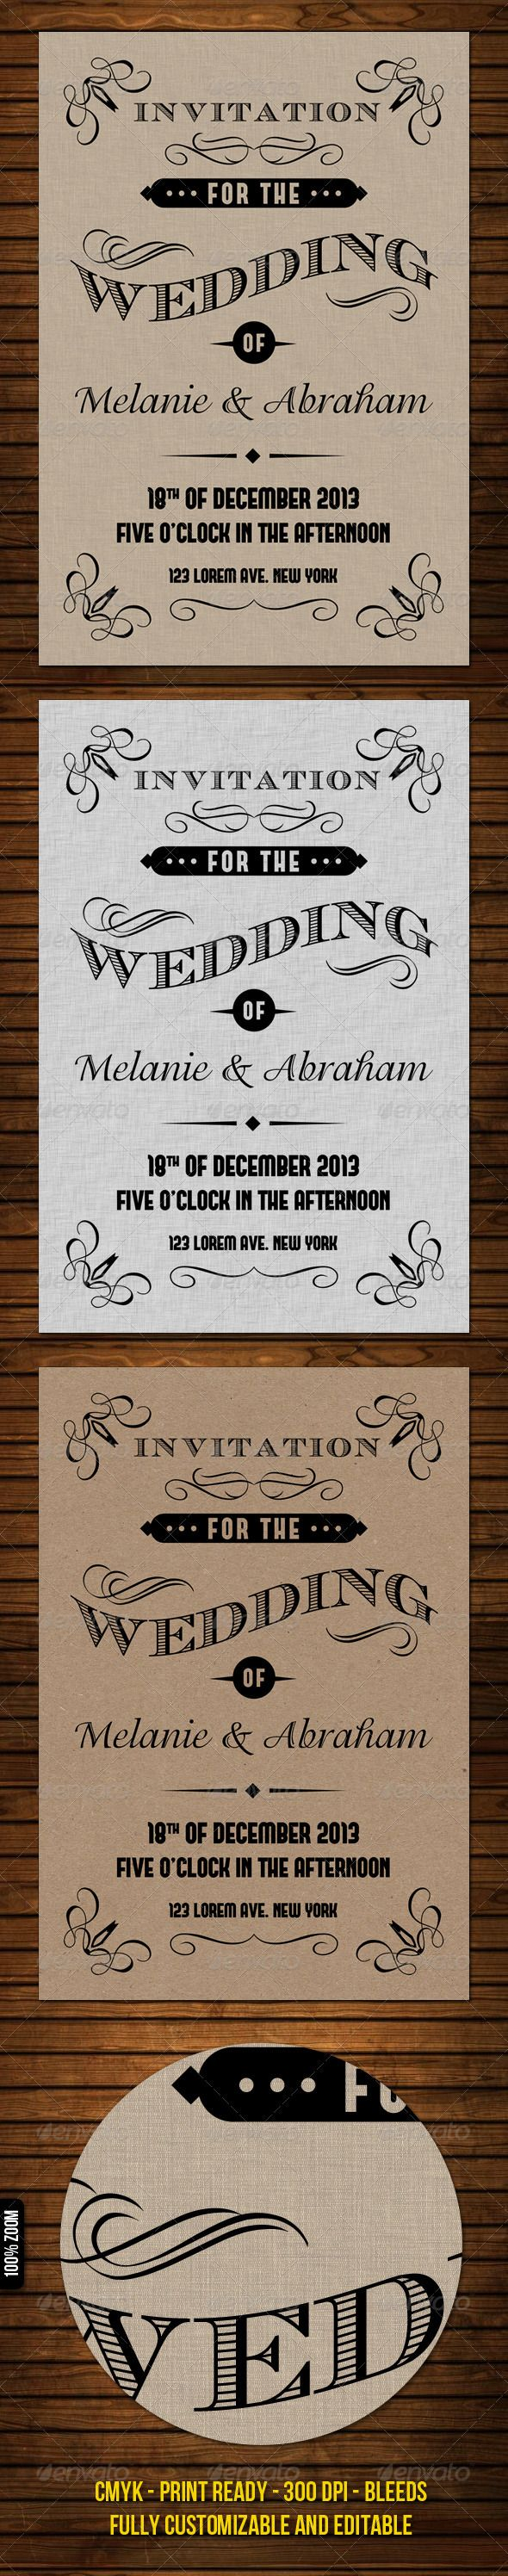 vintage wedding invitation text%0A Old Vintage Wedding Invitation